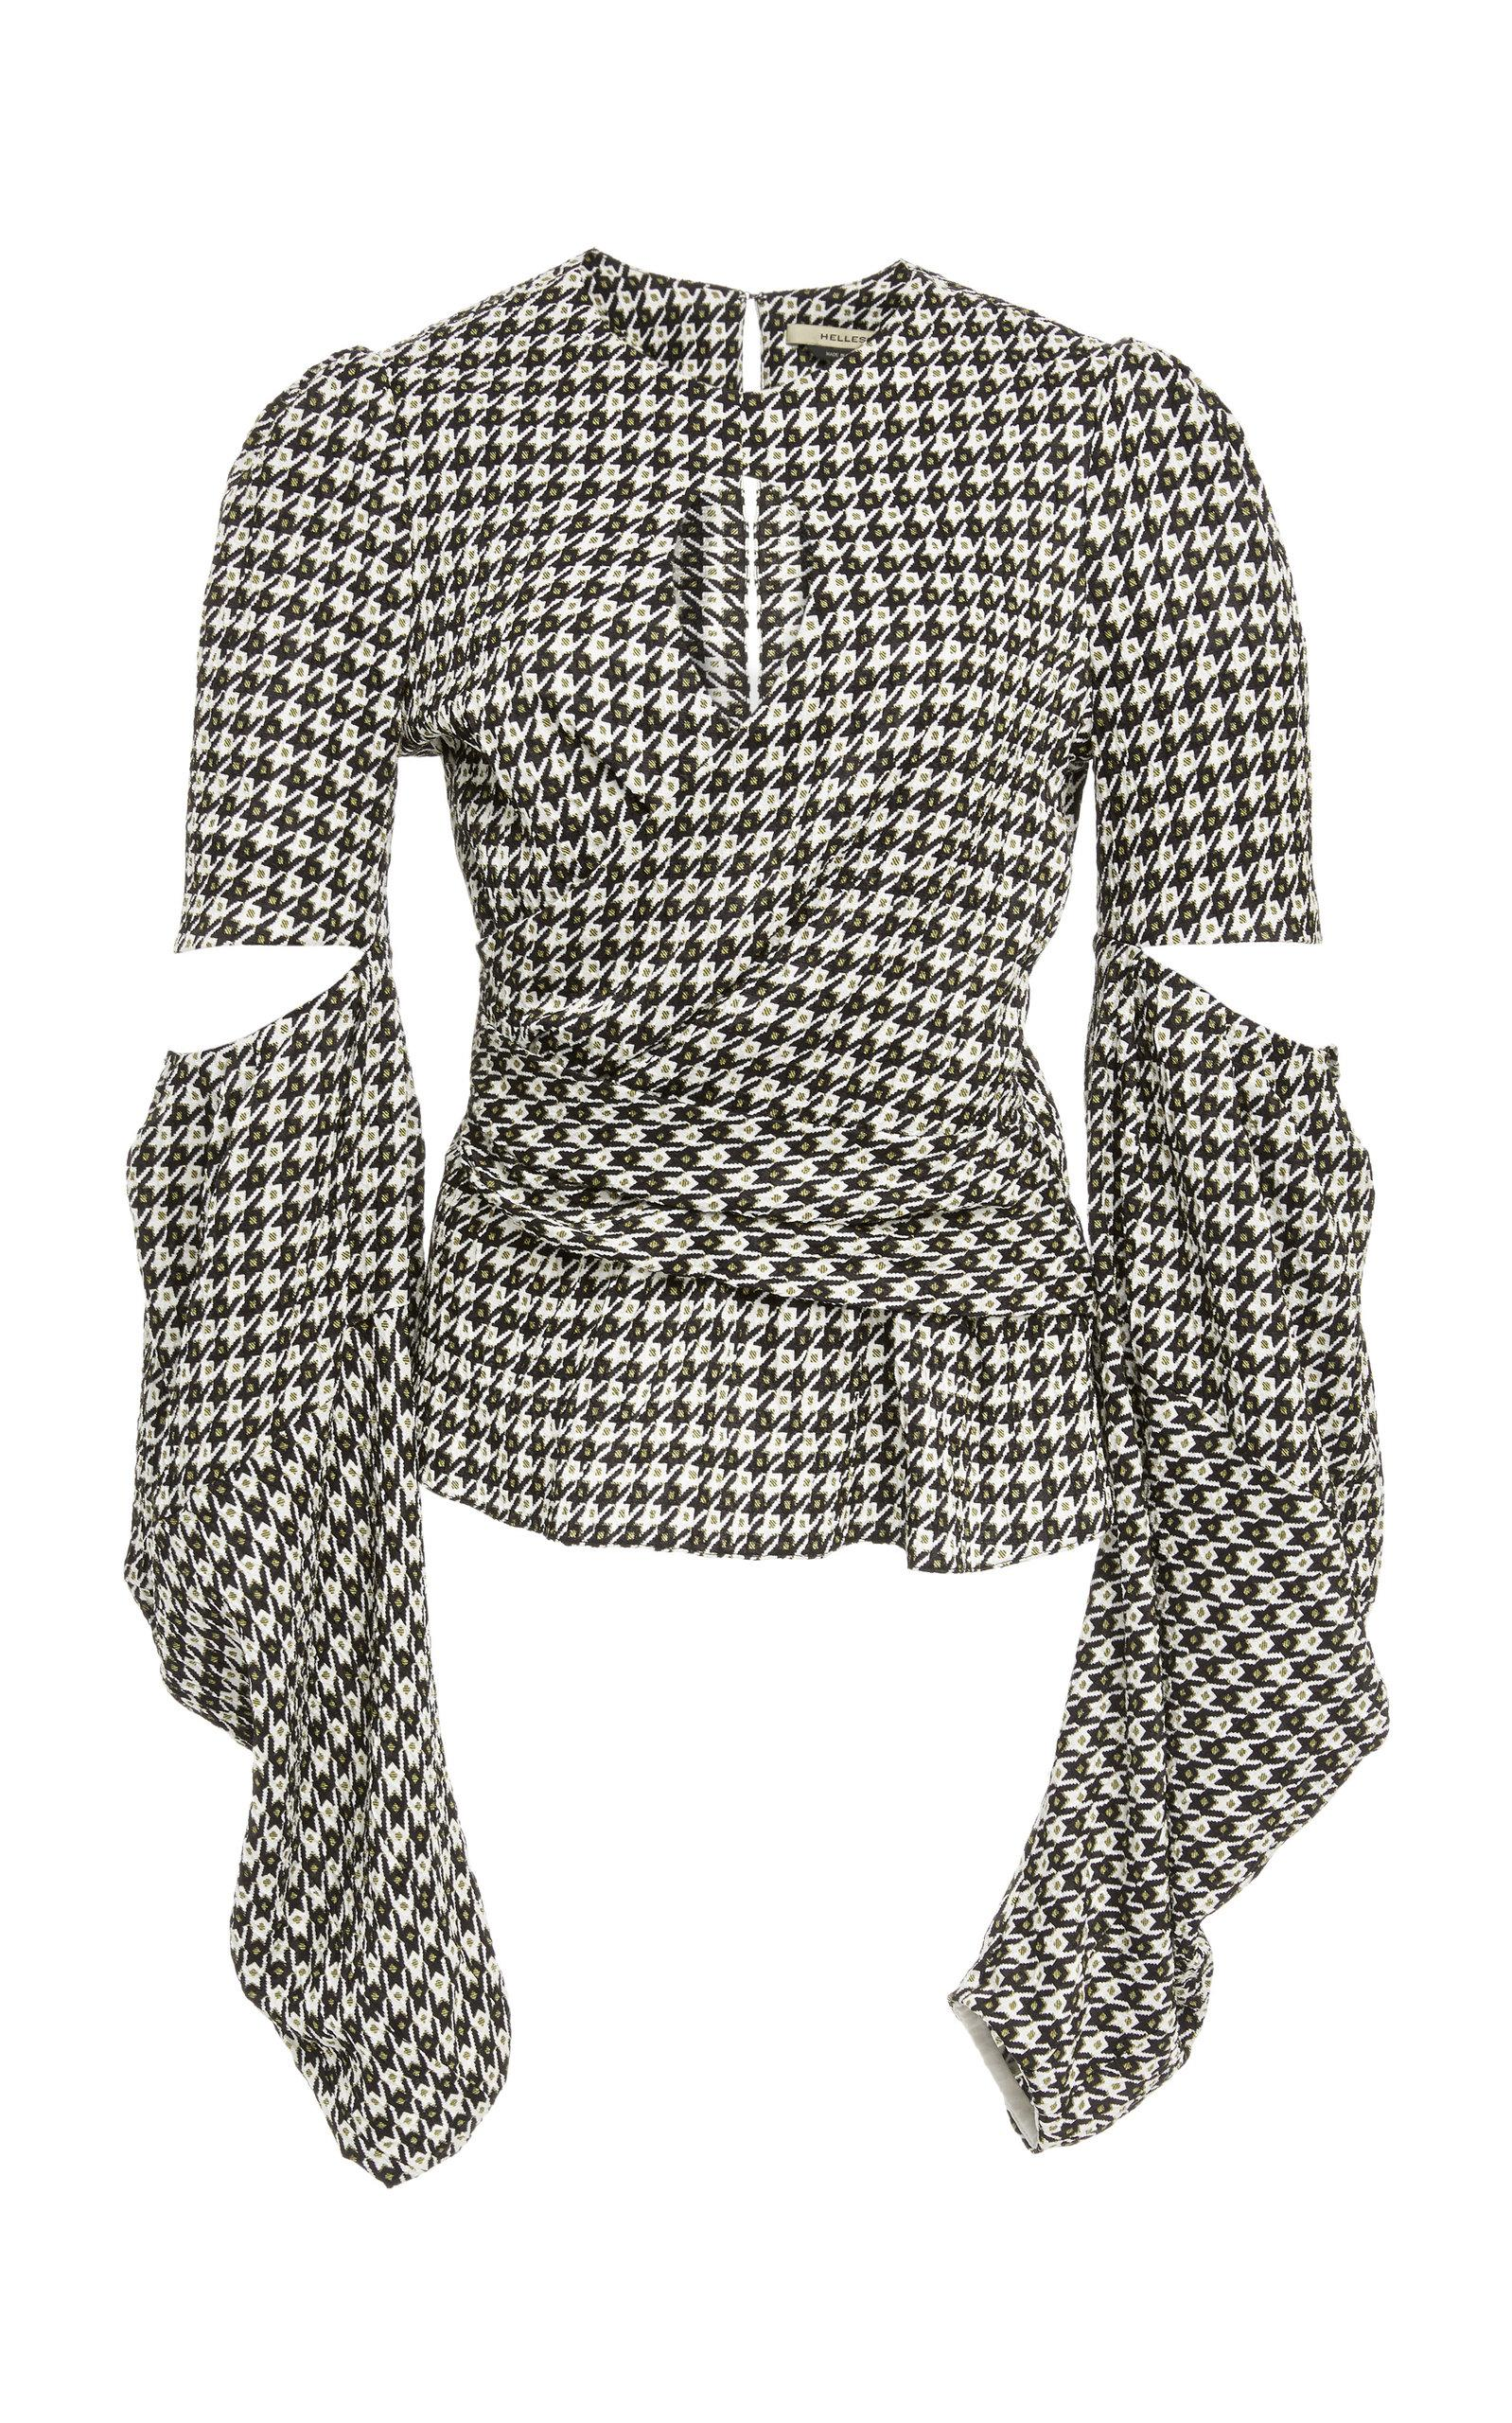 Hellessy Celeste Cutout Houndstooth Jacquard Blouse In Ecru/black/yellow